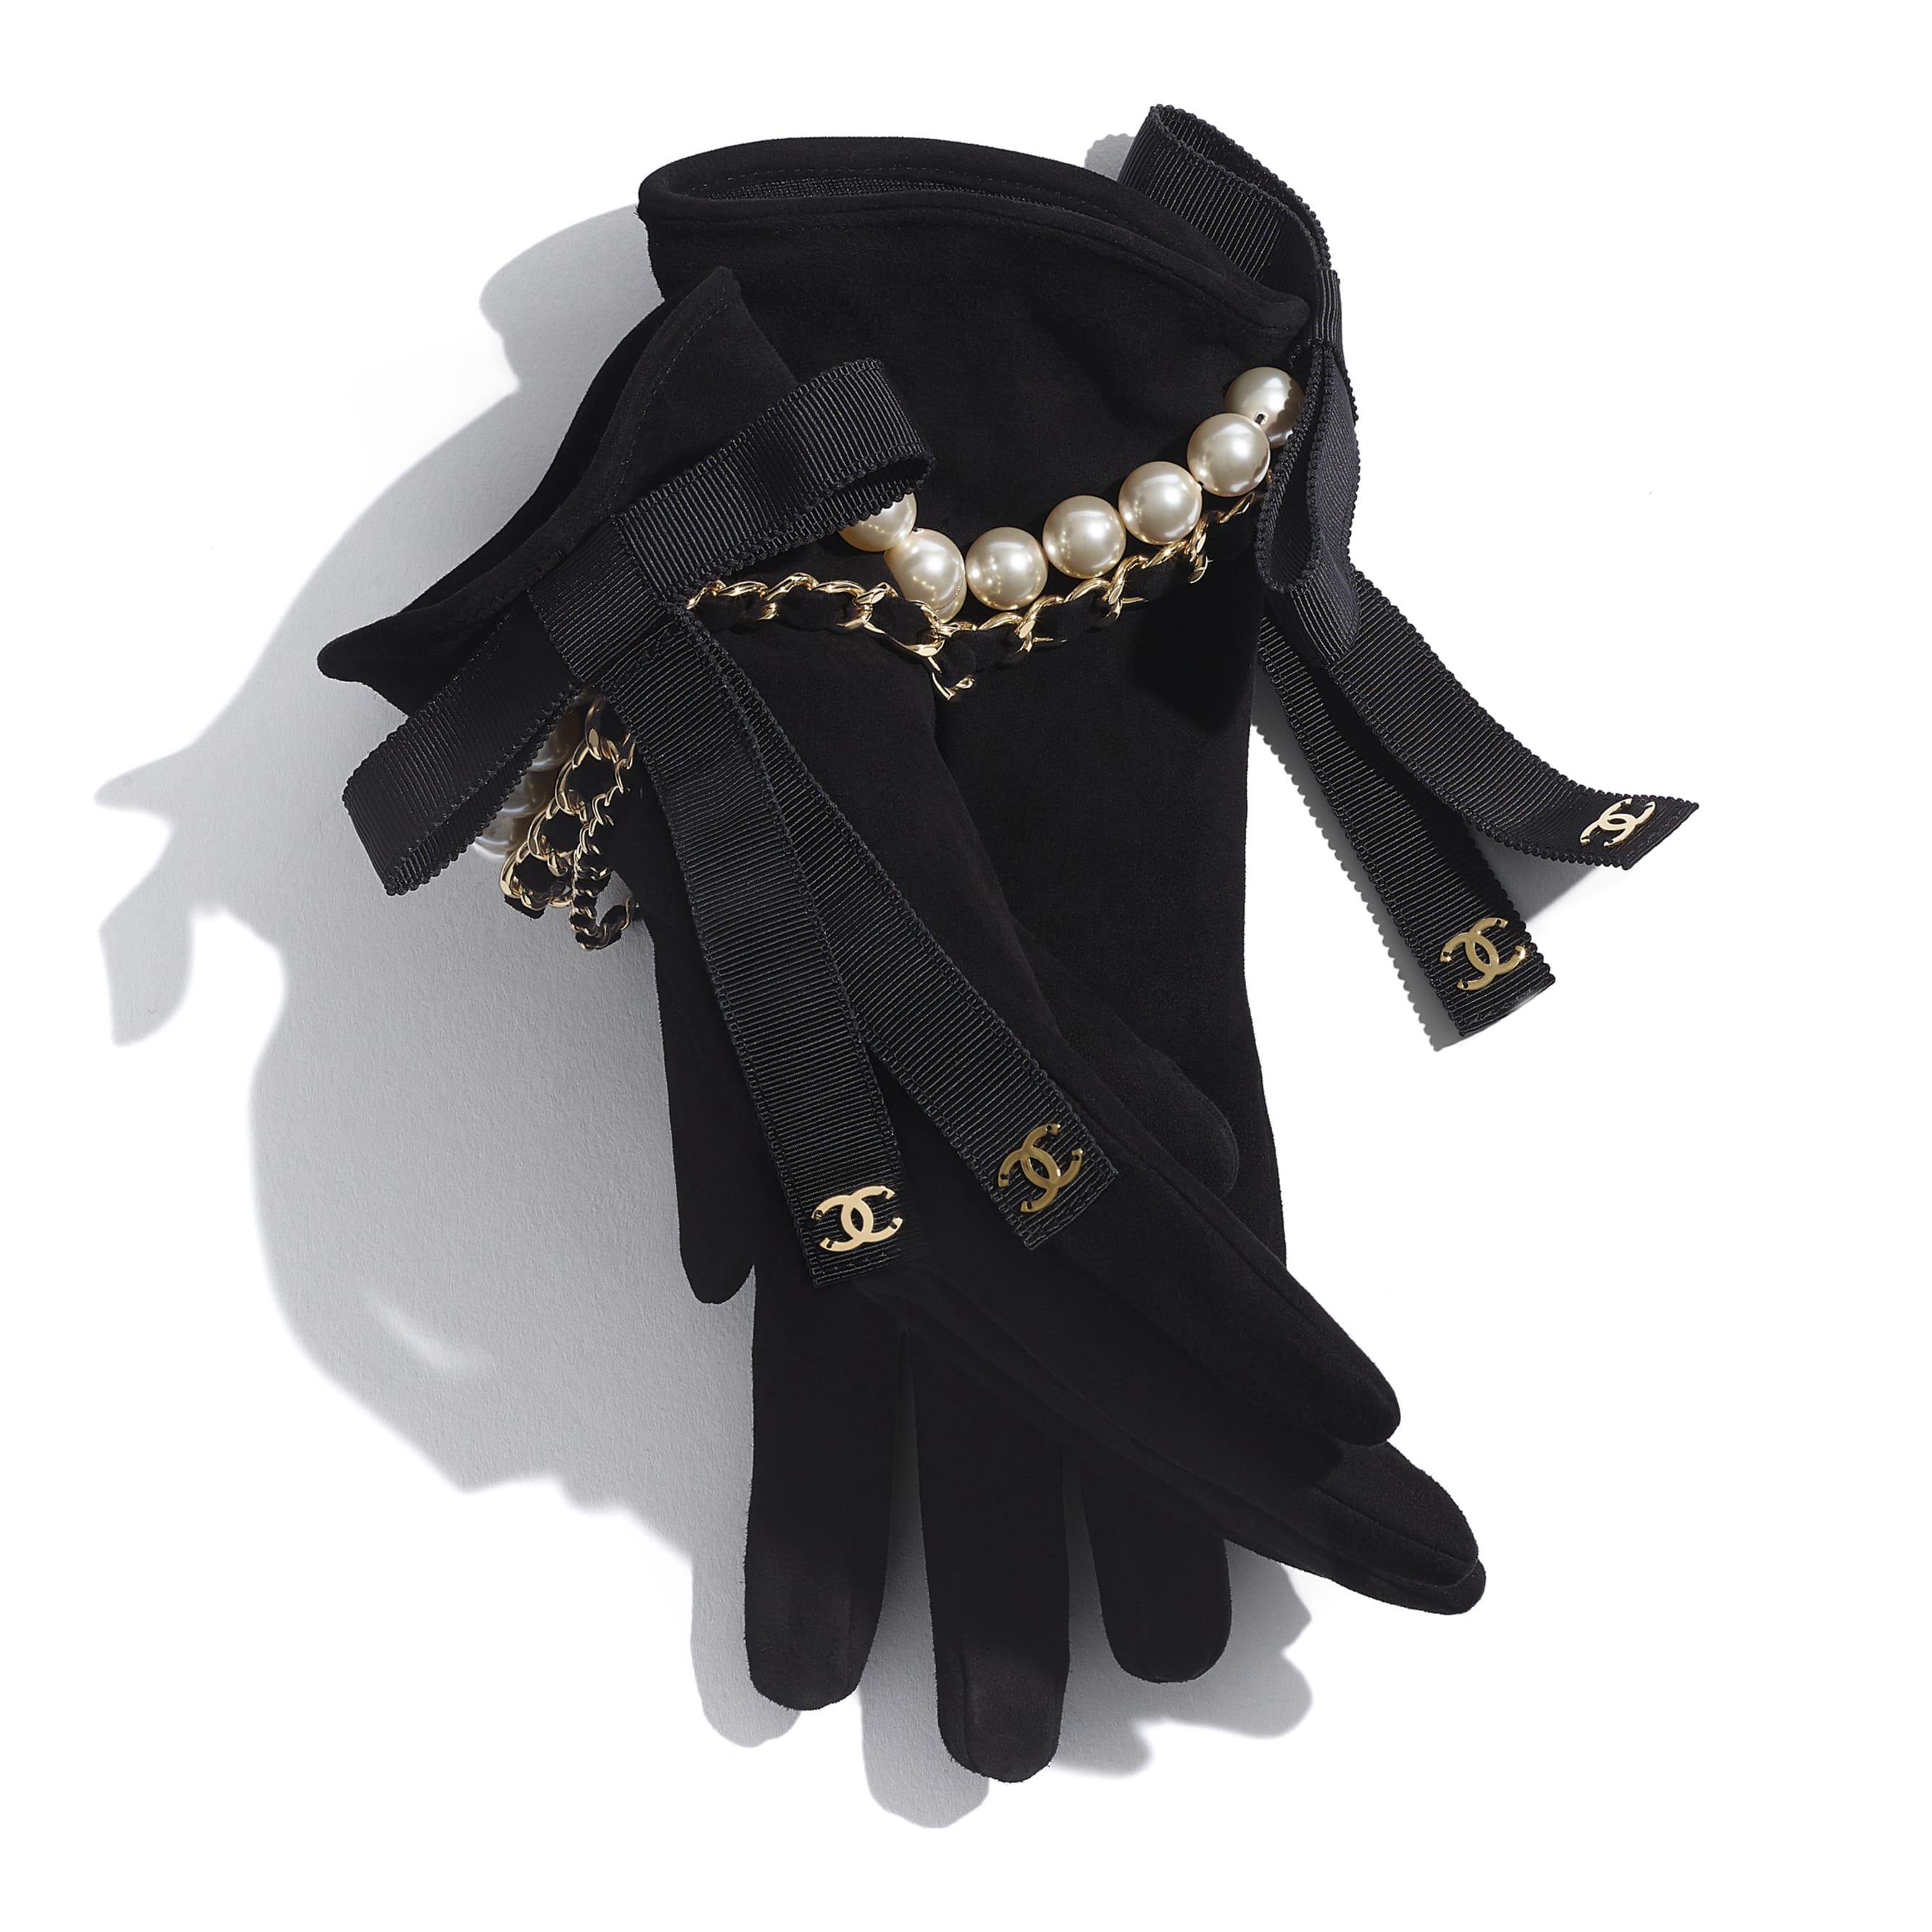 Gloves - Black - Suede Lambskin, Glass Pearls, Grosgrain & Gold-Tone Metal - CHANEL - Alternative view - see standard sized version